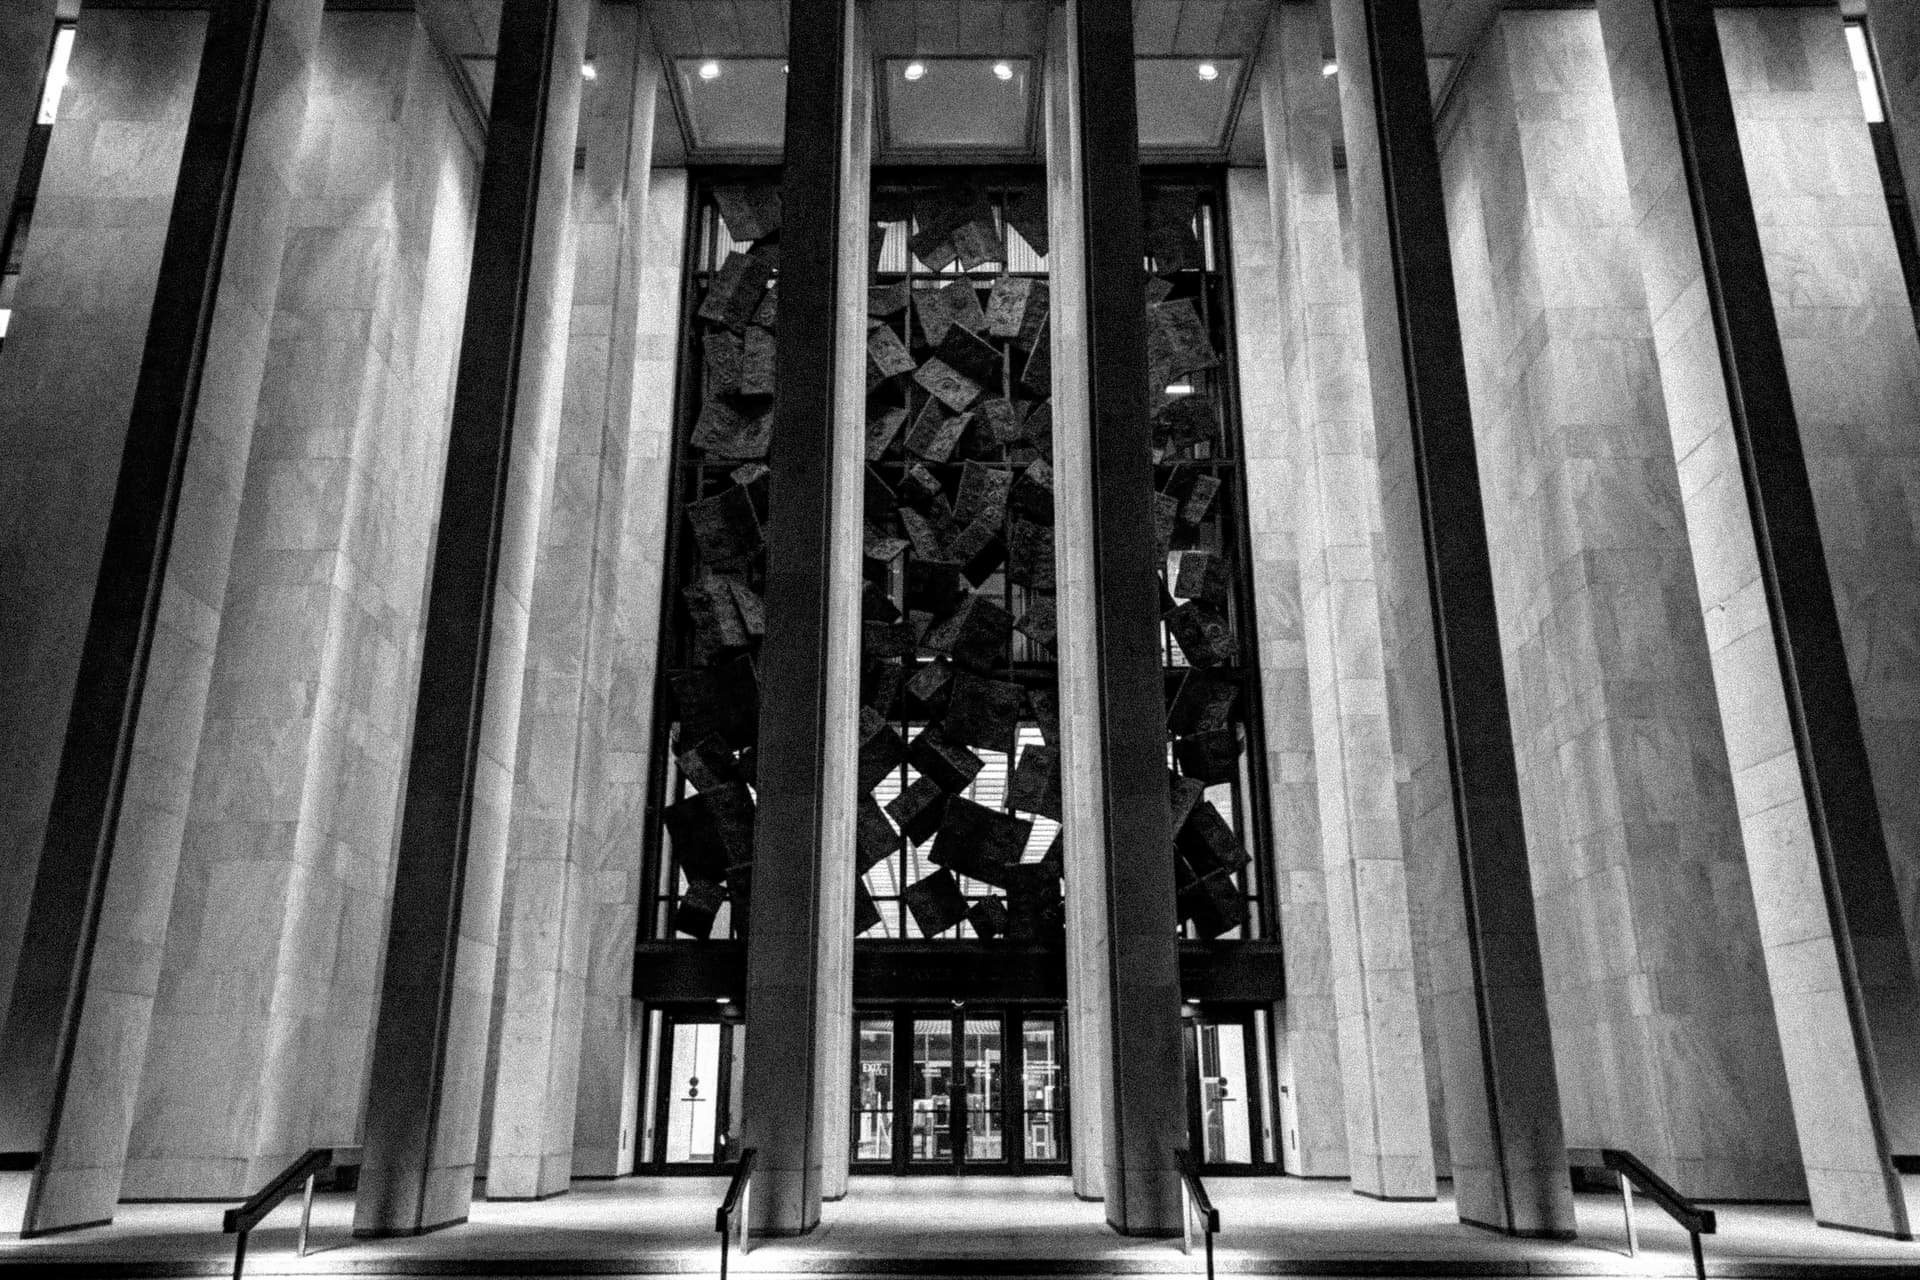 A black-and-white photograph of the Library of Congress annex at night.